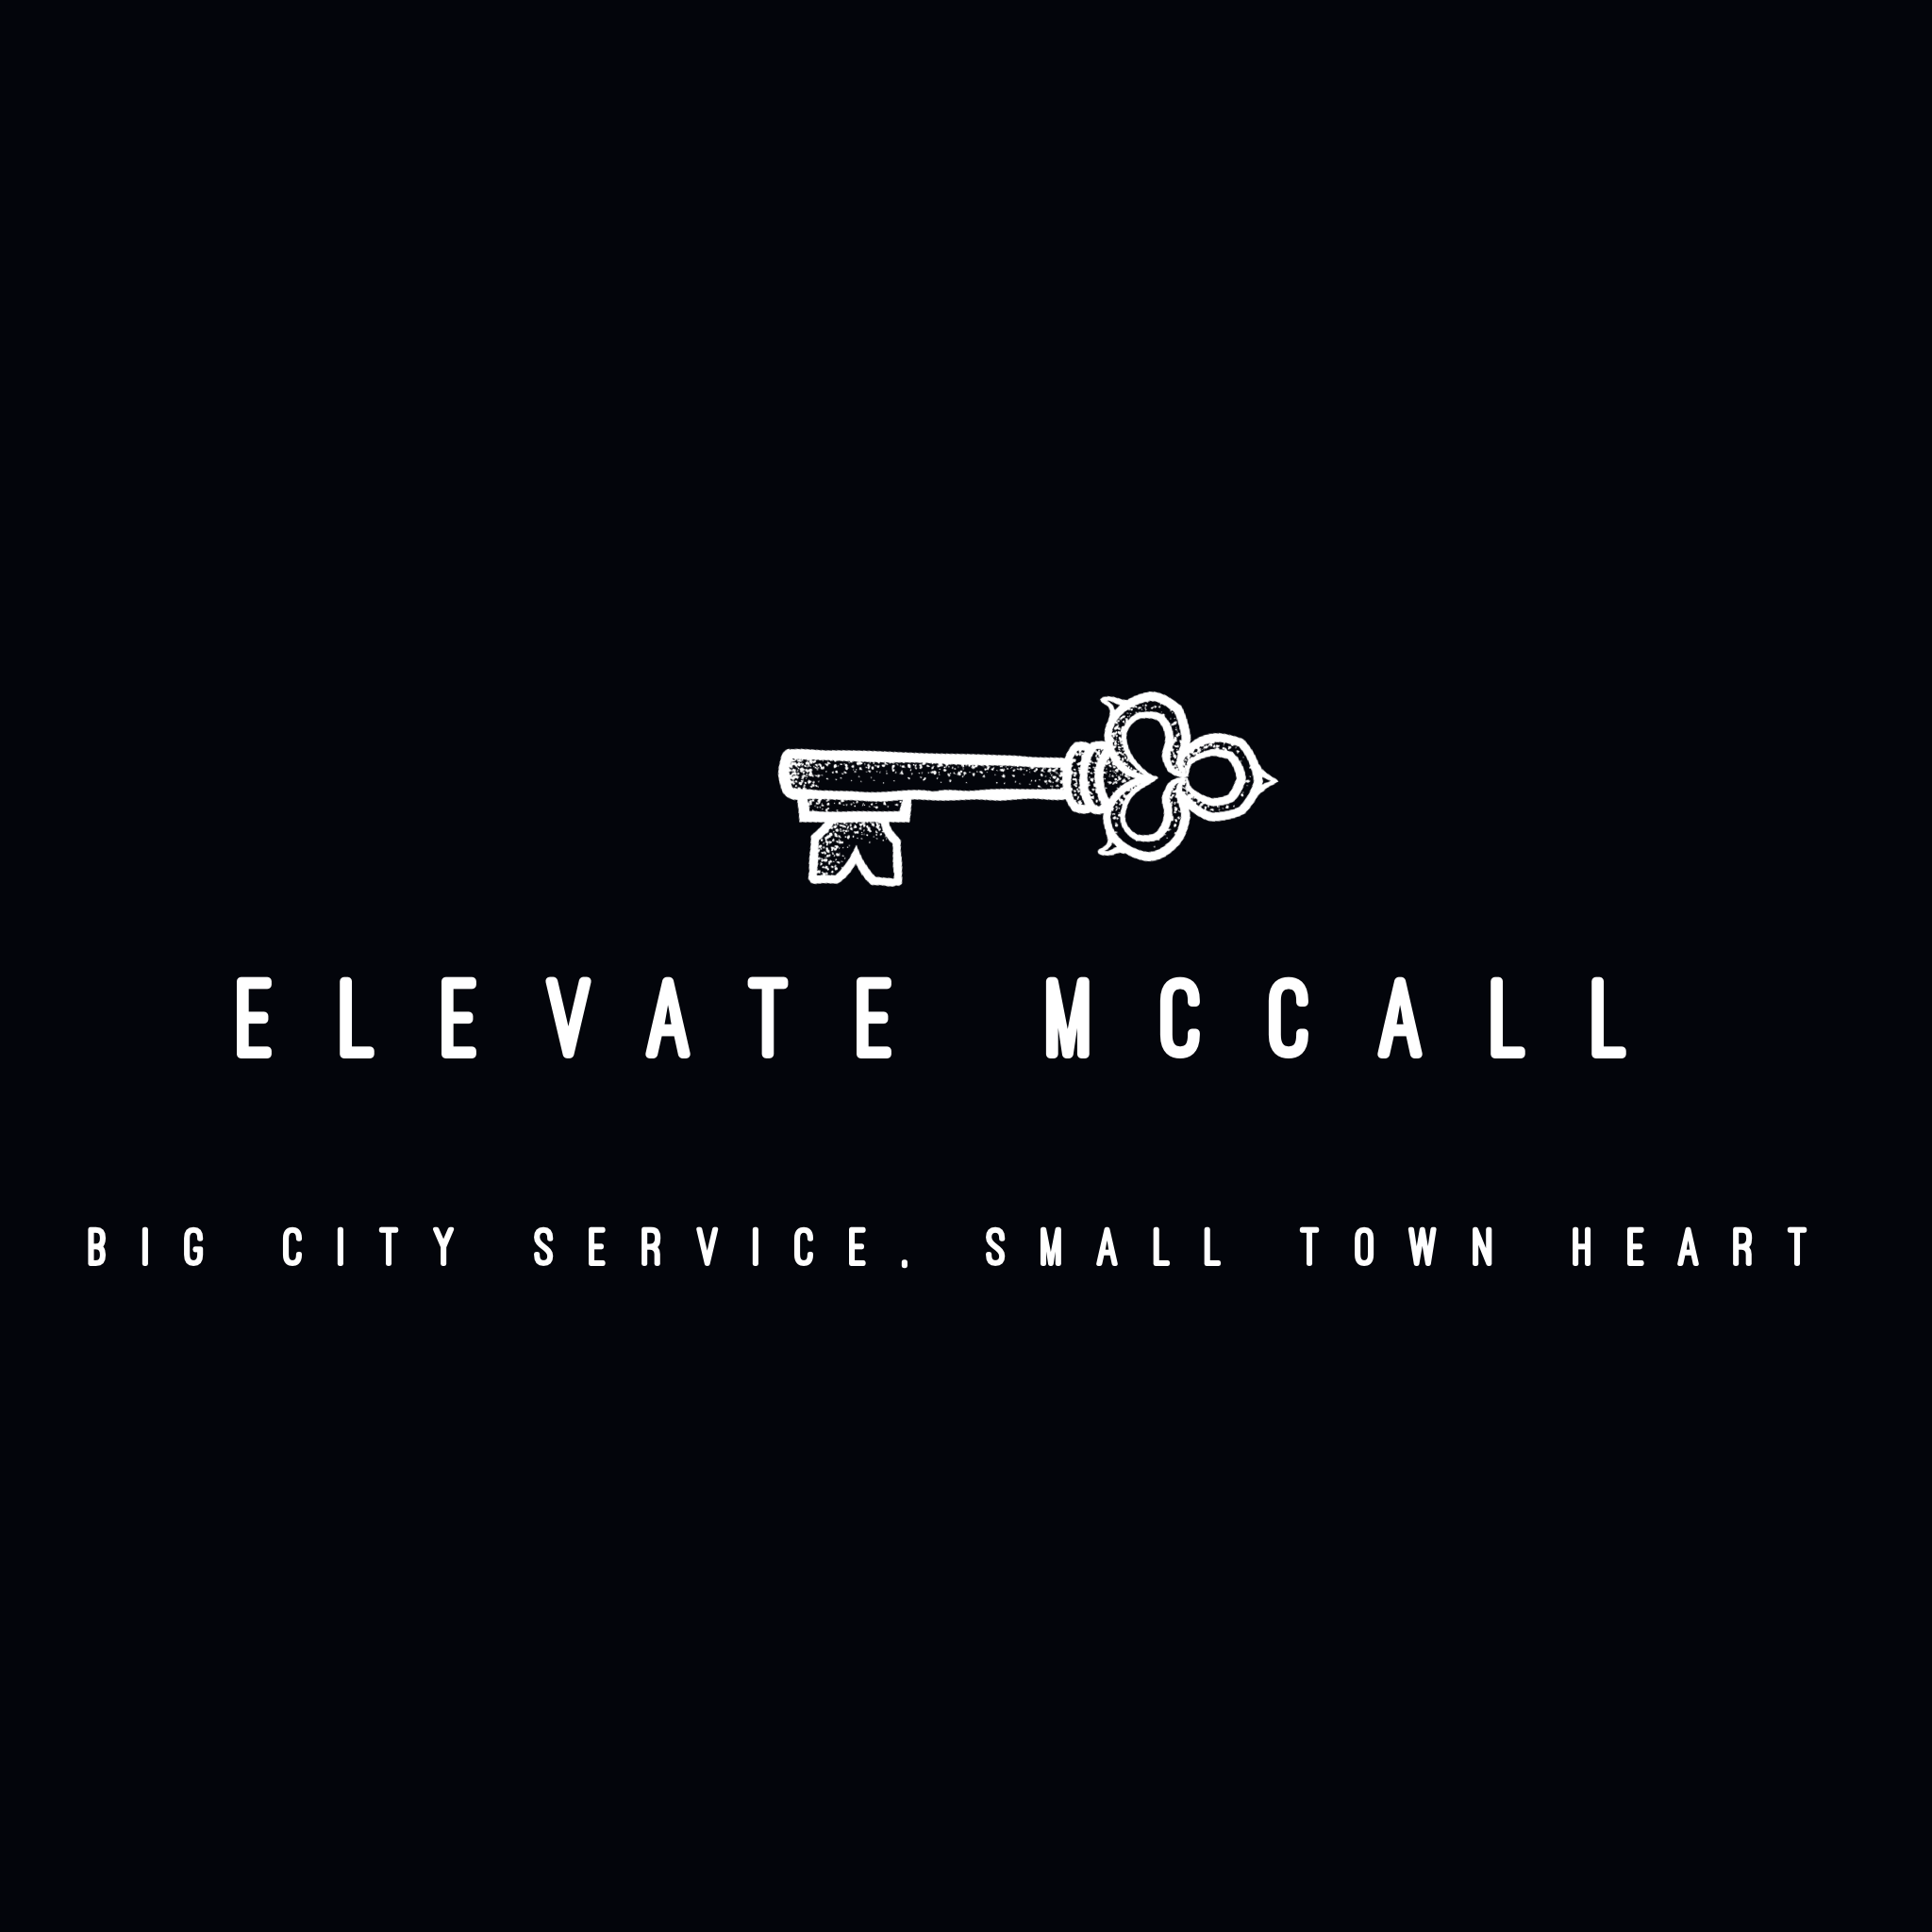 Hospitality Isn't An Industry, It's a PASSION - Elevate McCall is a collective of hospitality professionals who want to make your McCall trips memorable and full of unexpected delights. We Pride ourselves on delivering prestige service, products, and experiences. Home Sweet Home McCall is PROUD to be a Founding Member of the Elevate Collective & We look forward to Elevating your vacation to unimaginable experiences!Visit: www.elevatemccall.com